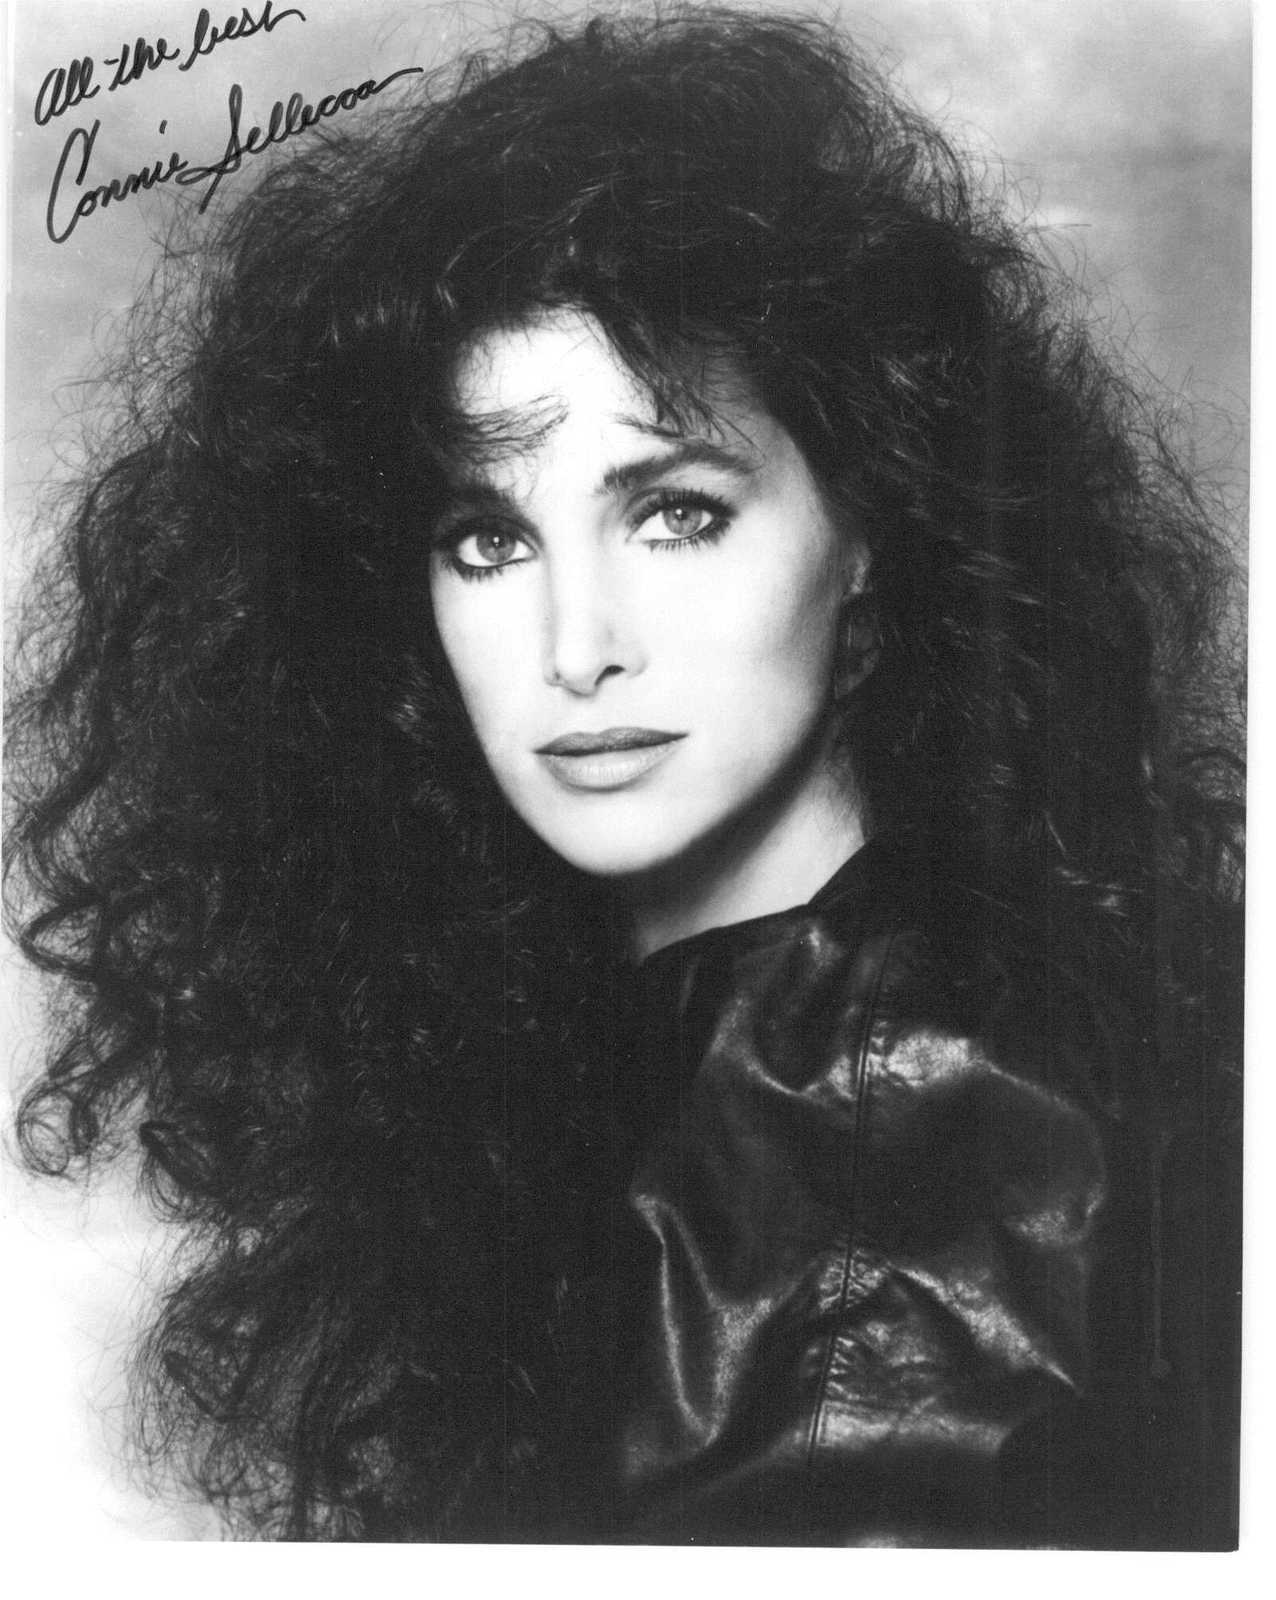 Primary image for Connie Sellecca Signed Autographed Glossy 8x10 Photo